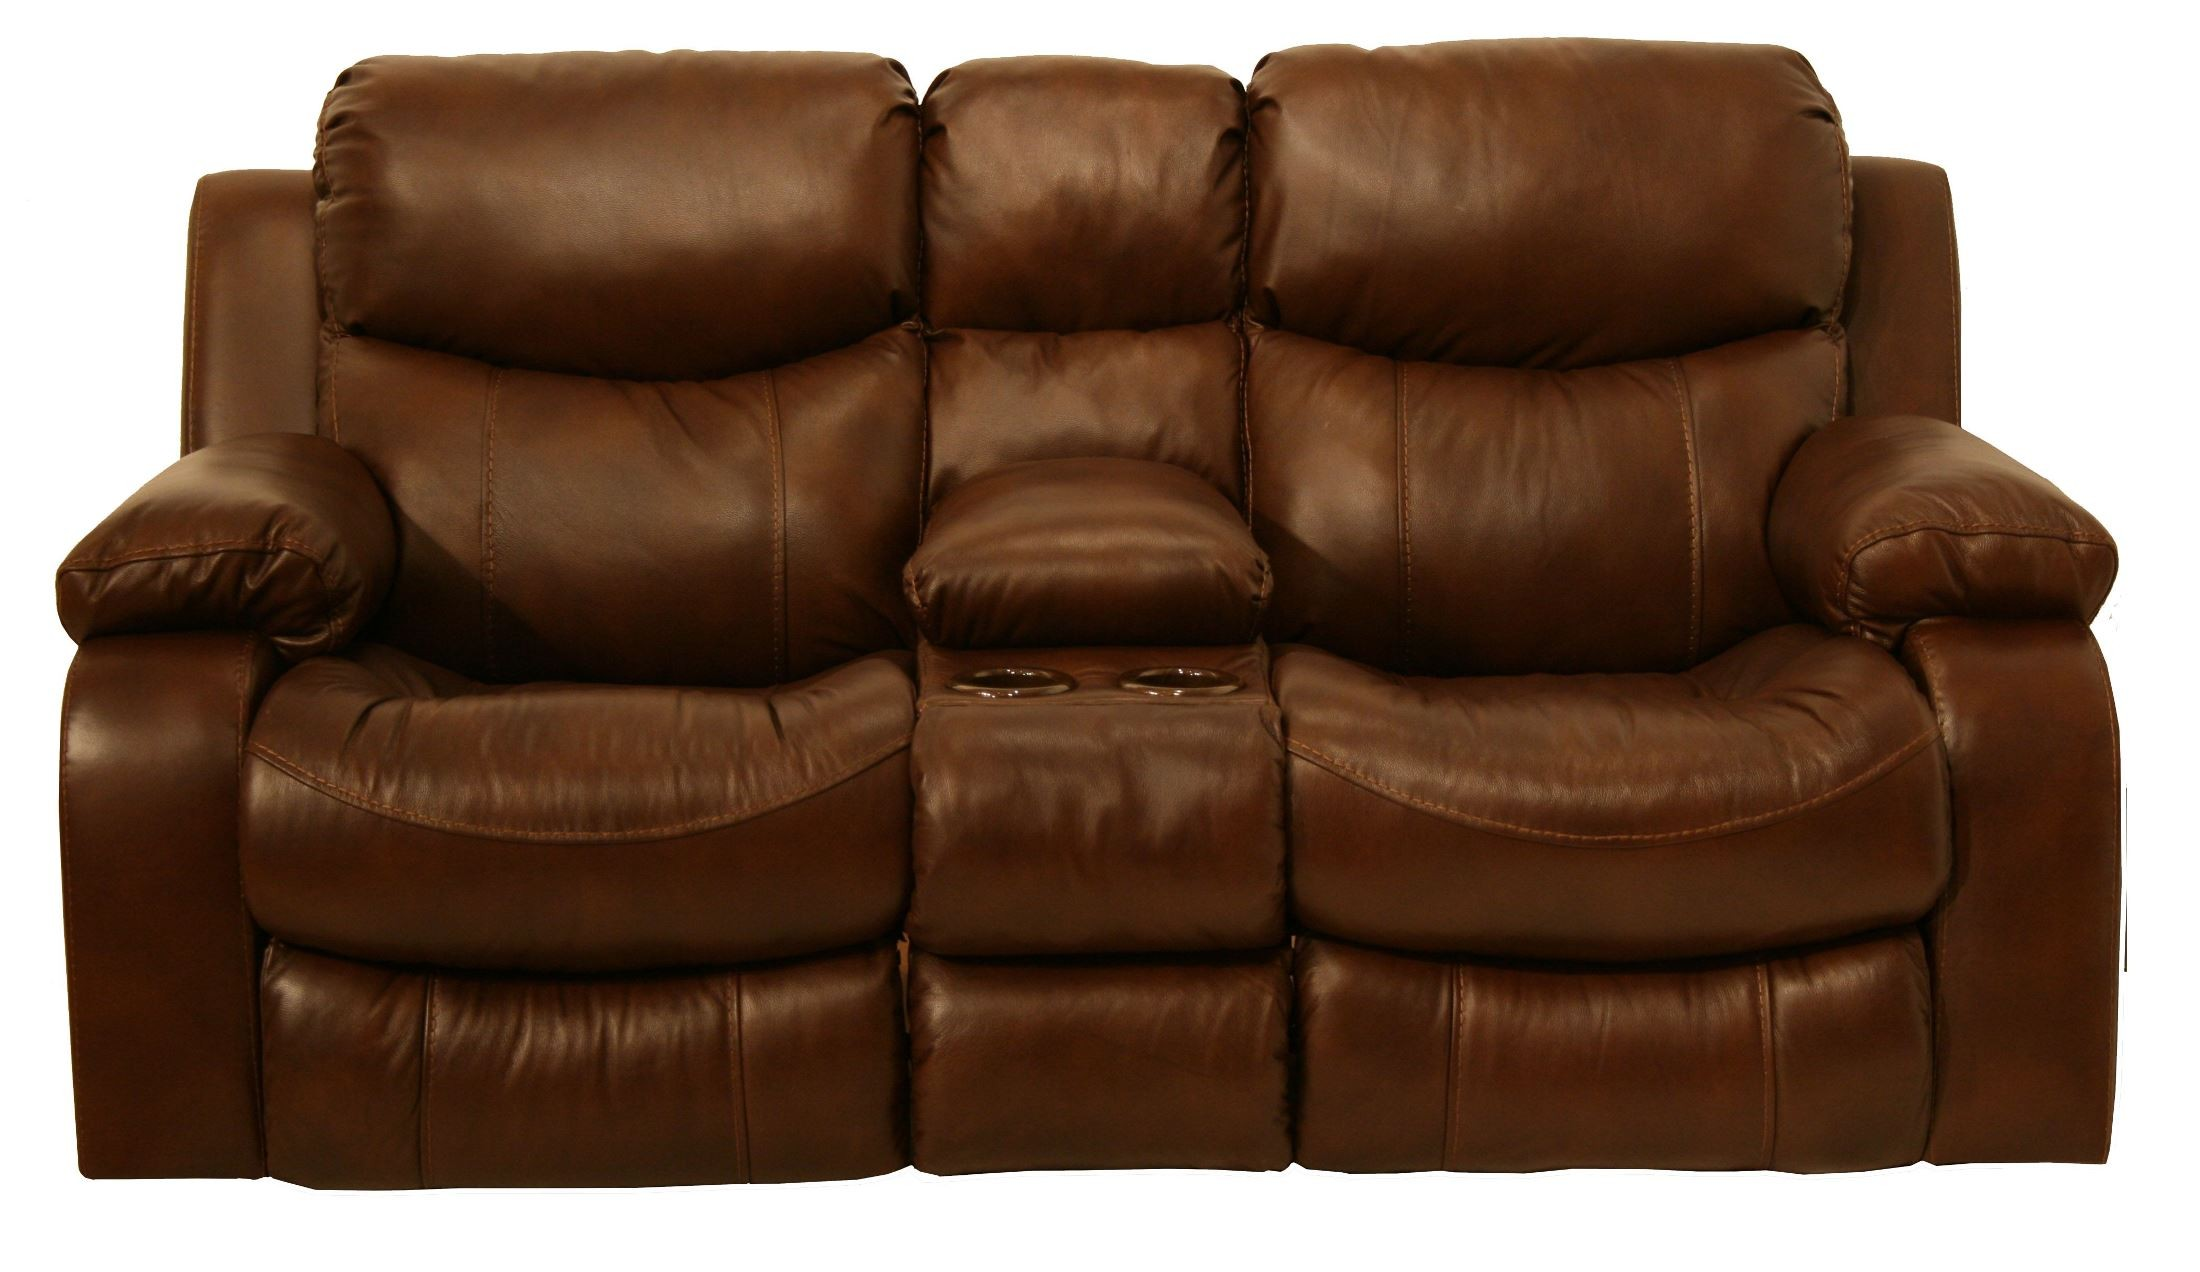 Dallas tobacco power reclining loveseat with console from catnapper 64959100000000000 Power loveseat recliner